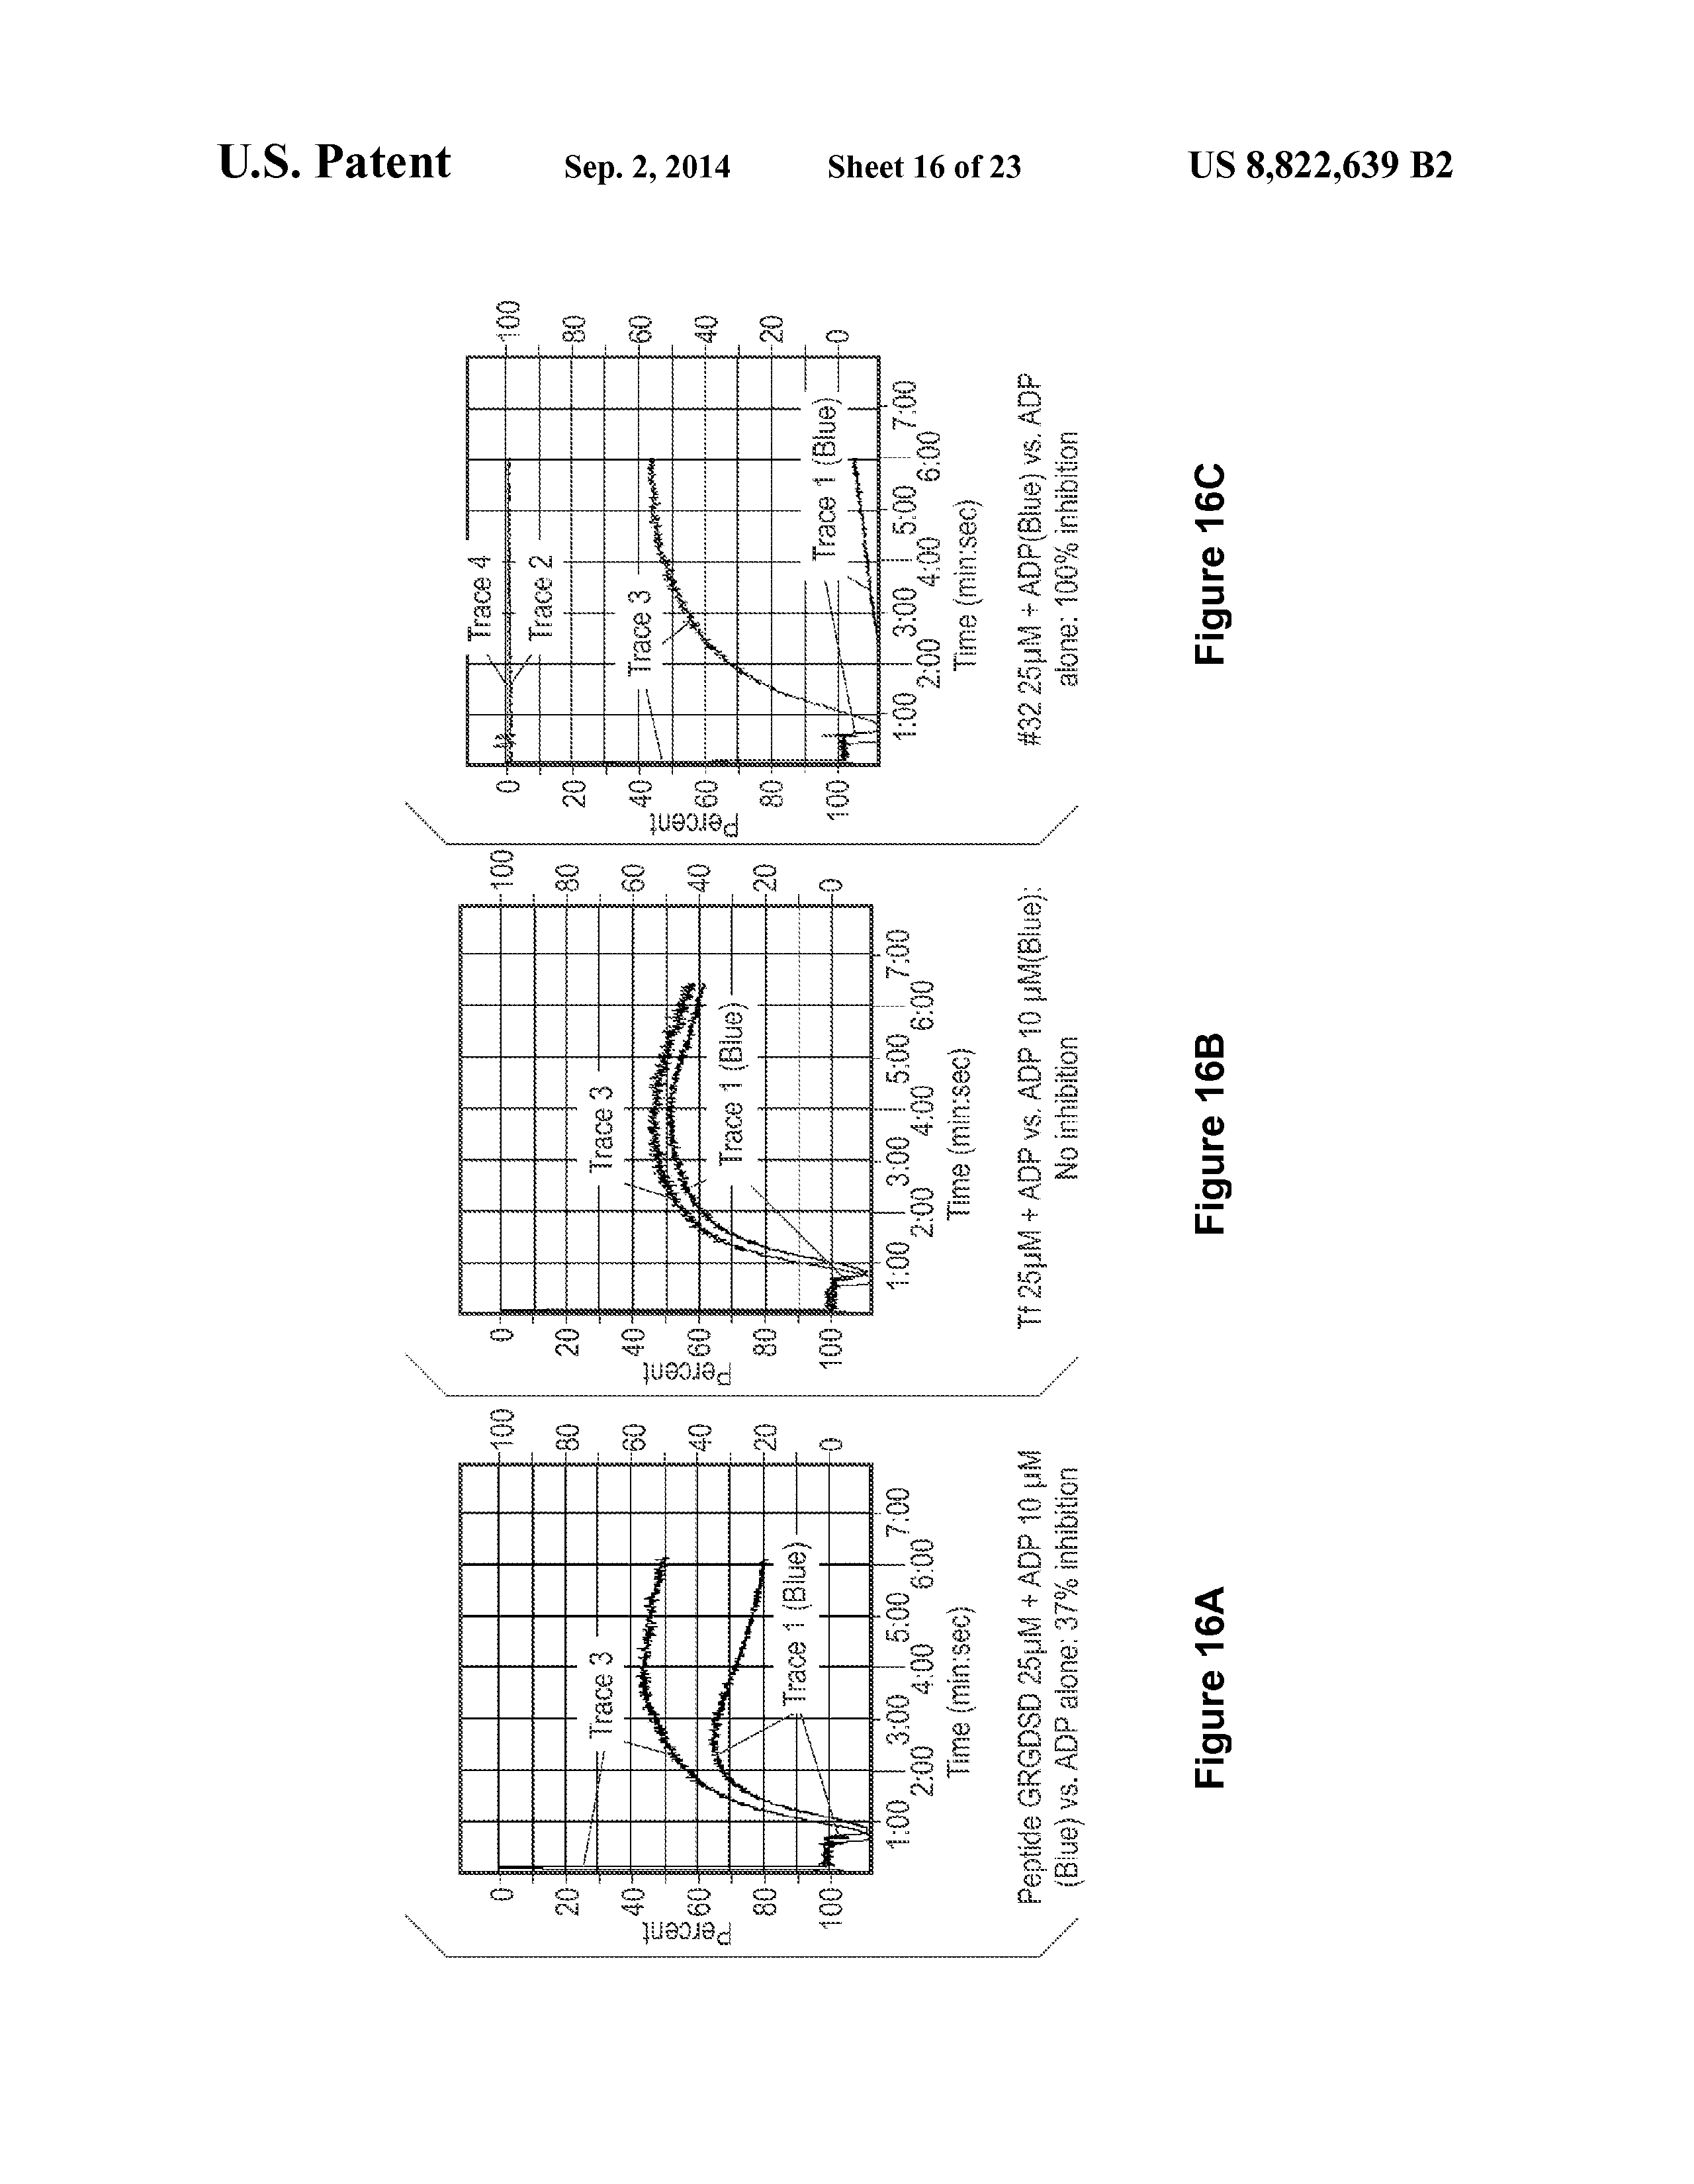 US 8822639 B2 - Transferrin Fusion Protein Libraries - The